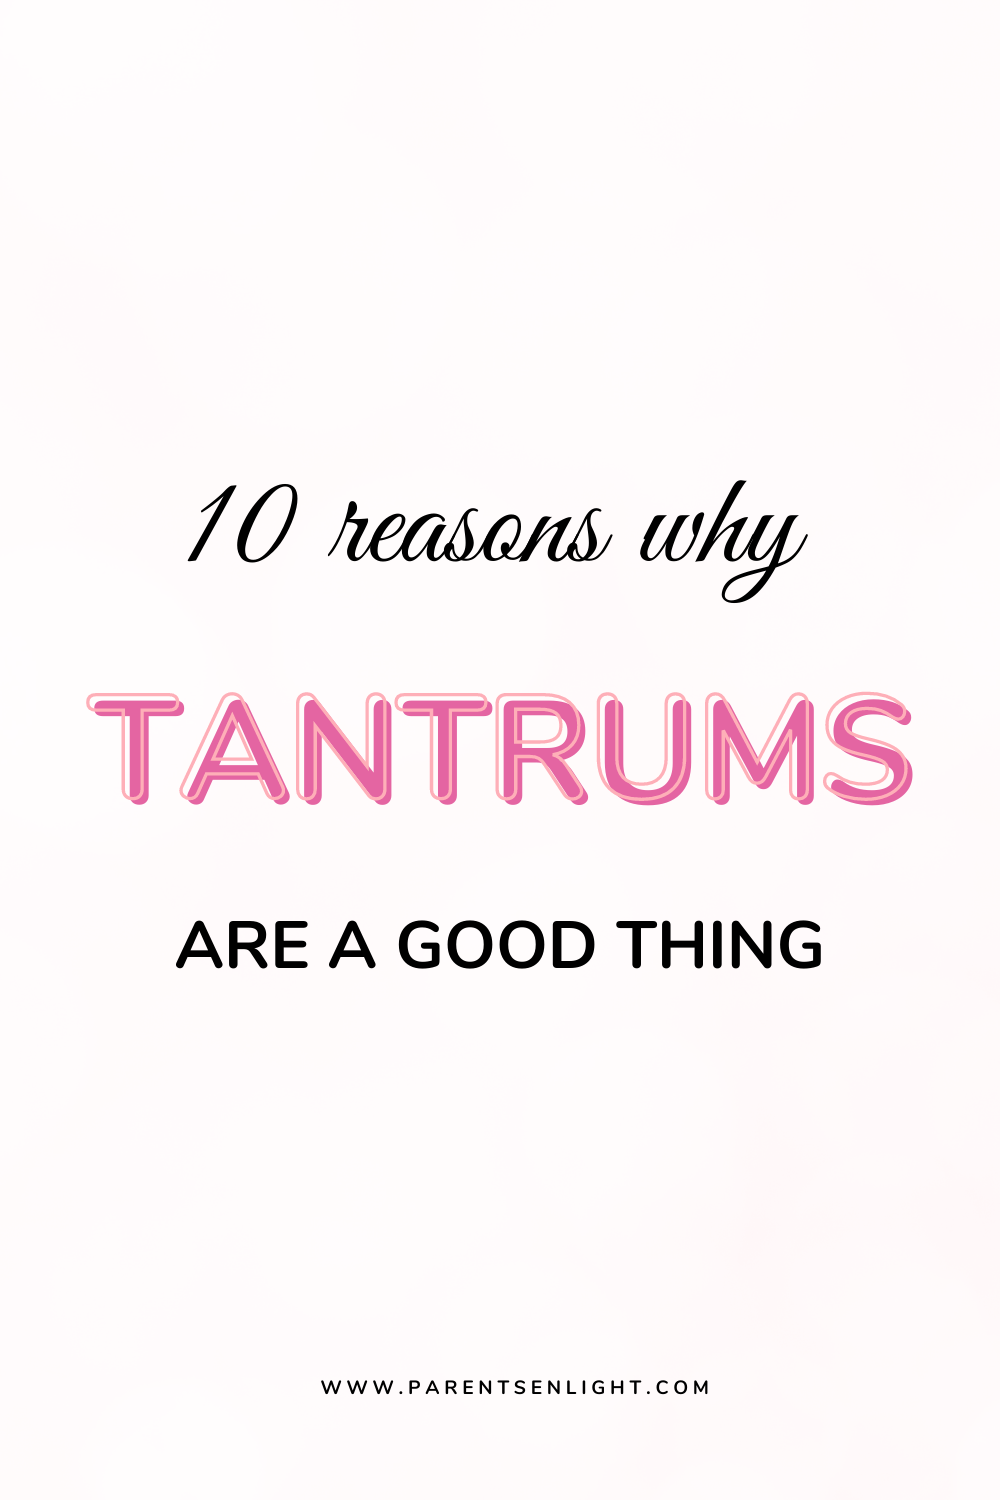 Can you imagine tantrums being a good thing?? That's only because you never learned how you can use tantrums for your parental benefit, and how to work with tantrums to actually strengthen your relationship with your child. This is how :) #handletantrumswithpositiveparenting #positiveparenting #positiveparentingsolutions #positiveparentingstrategies #mindfulparenting #connectiveparenting #attachmentparenting